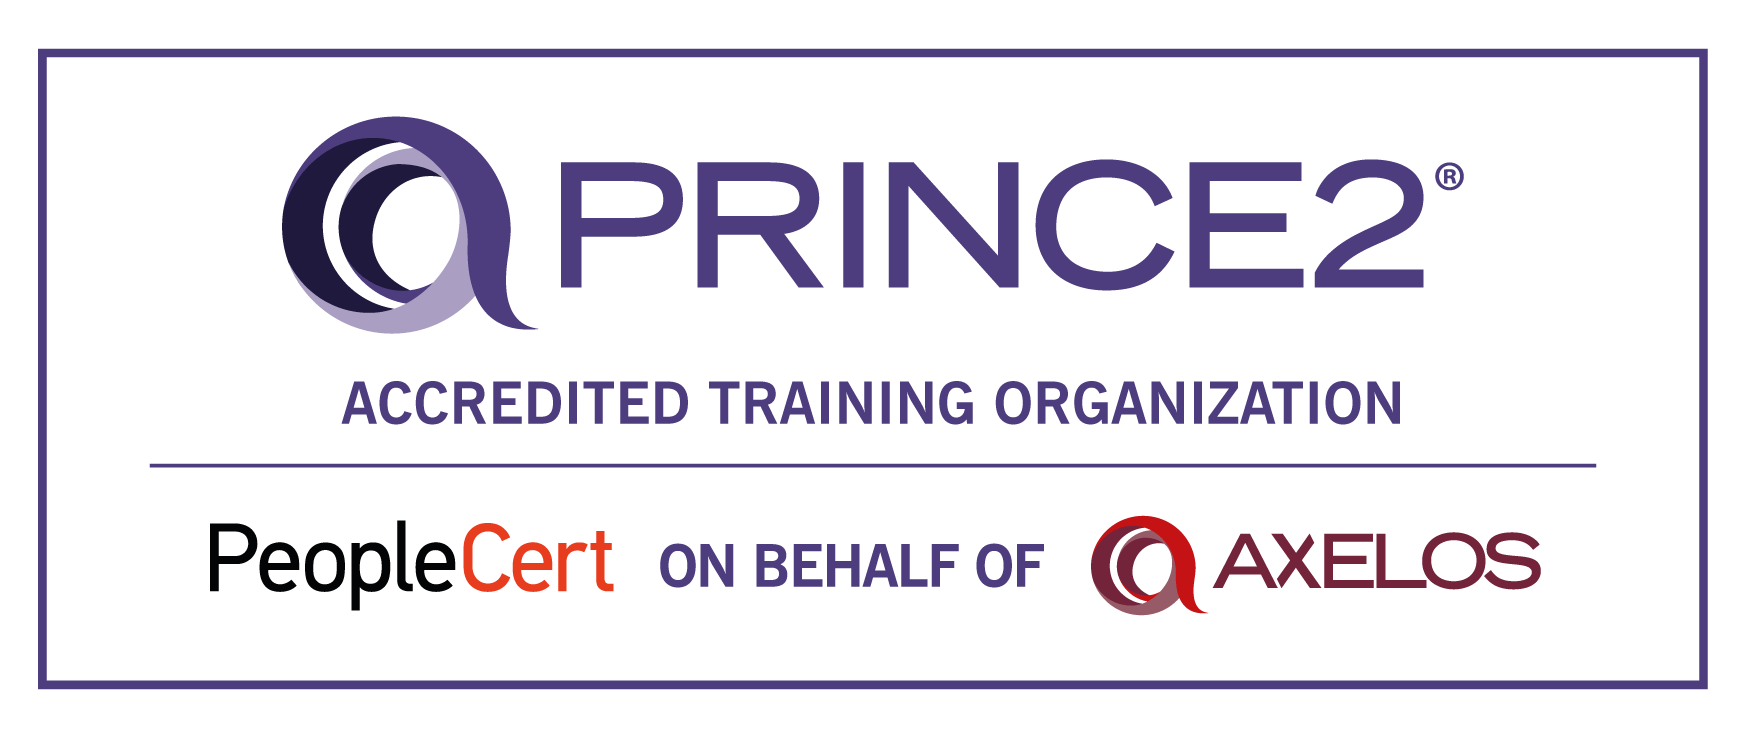 PRINCE2 Accredited Training Organisation KnowledgeAdd